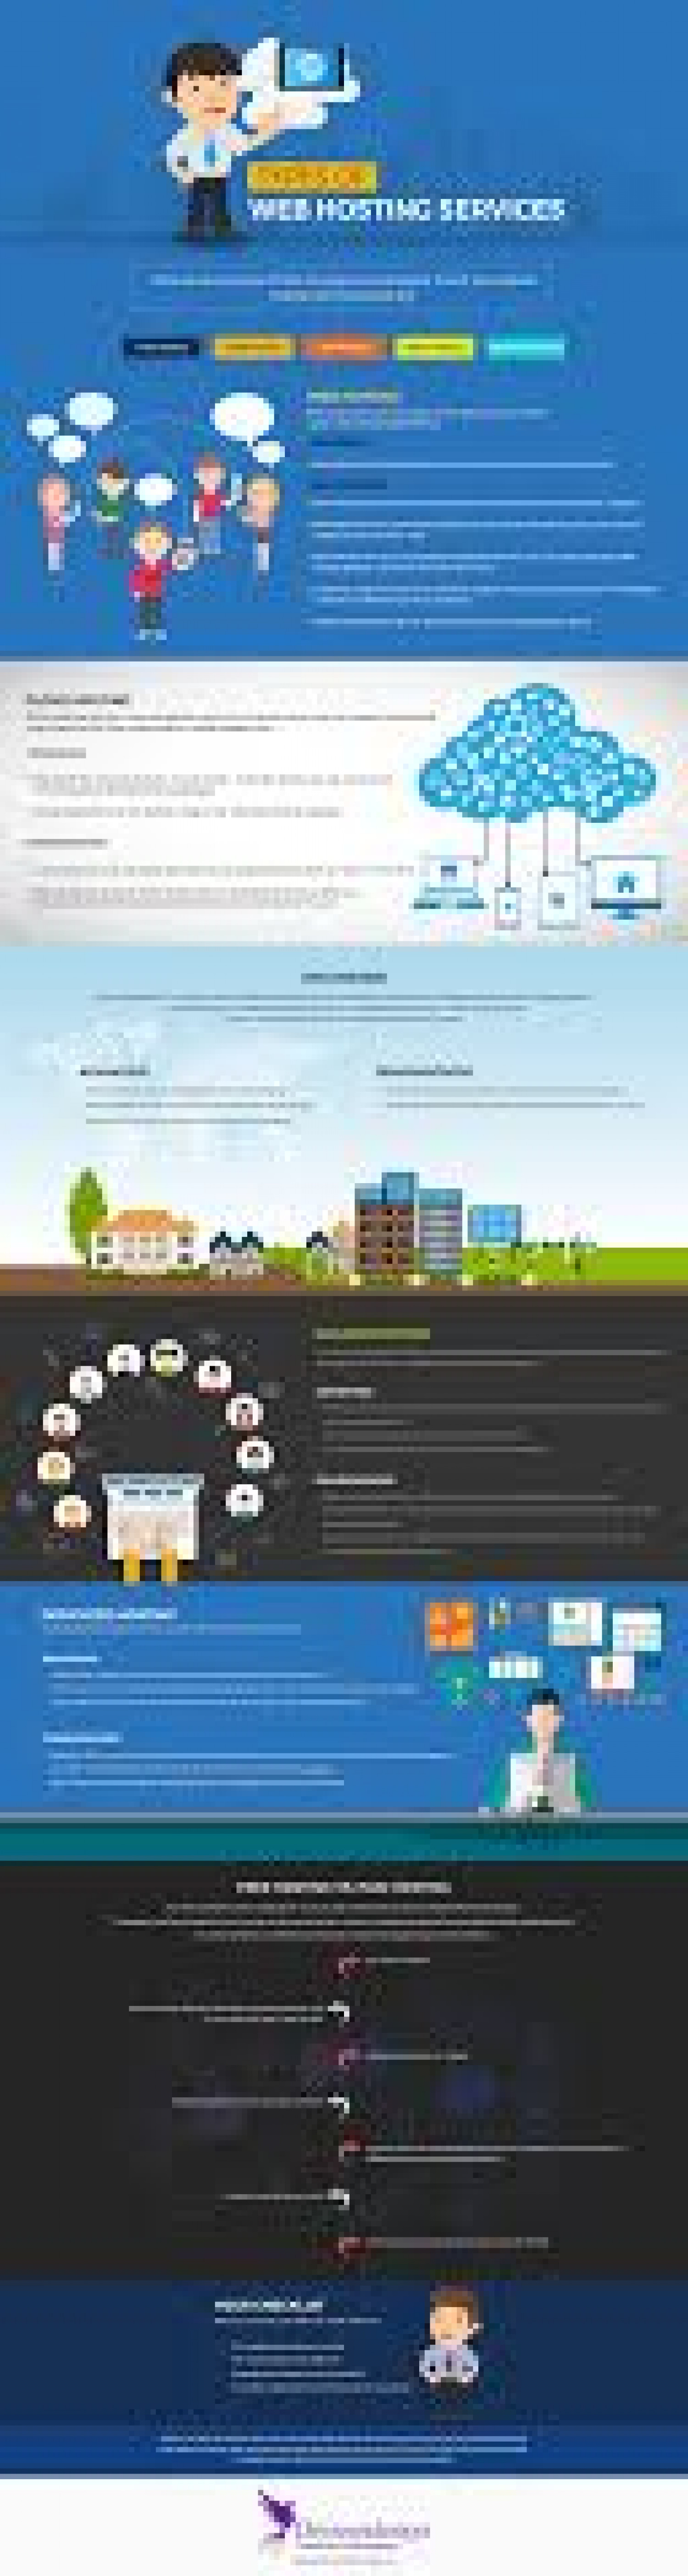 Type of web hosting Infographic